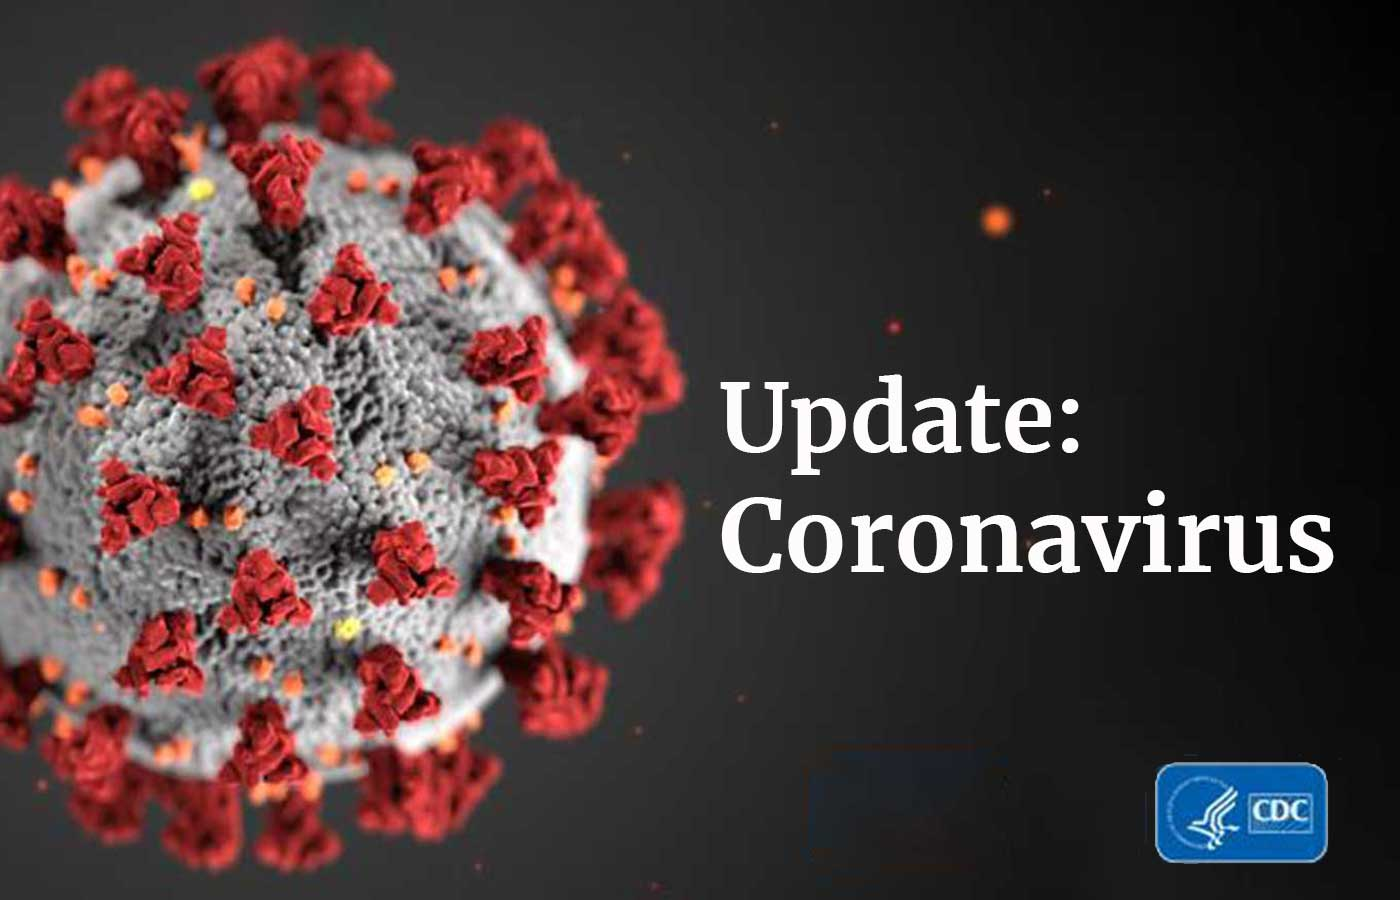 Words Coronavirus Update with close up of coronavirus from CDC